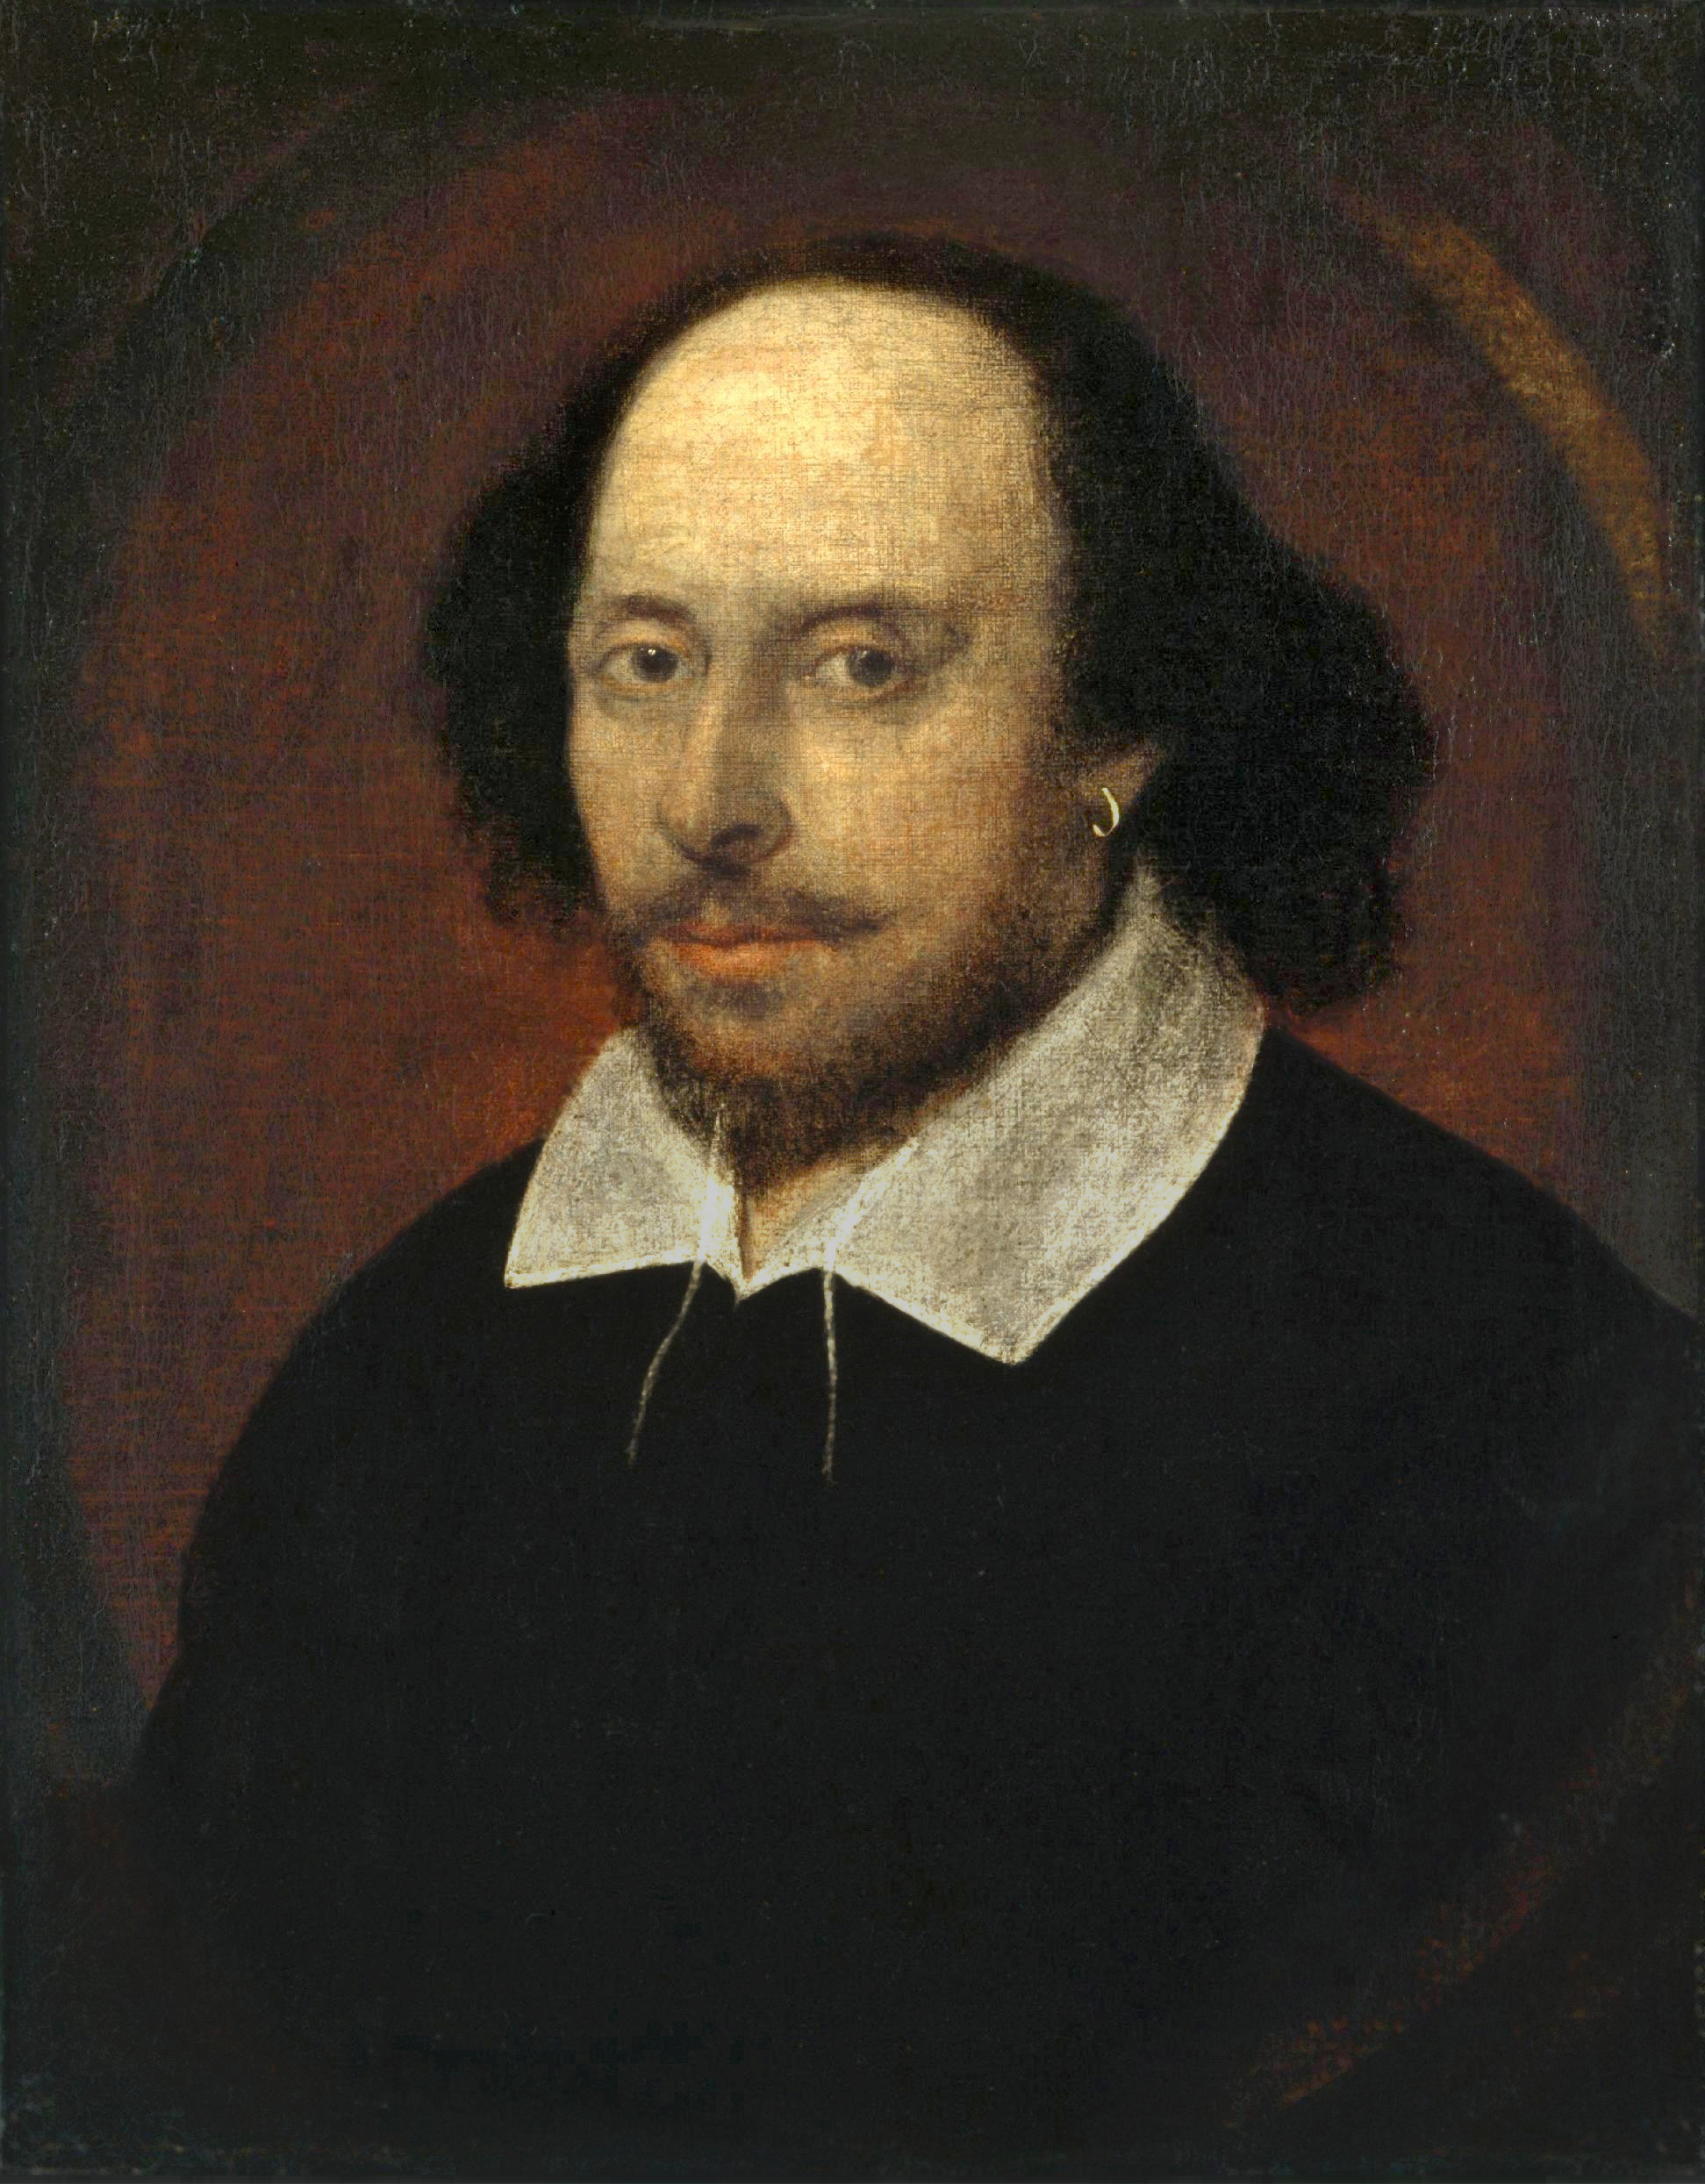 Depiction of William Shakespeare